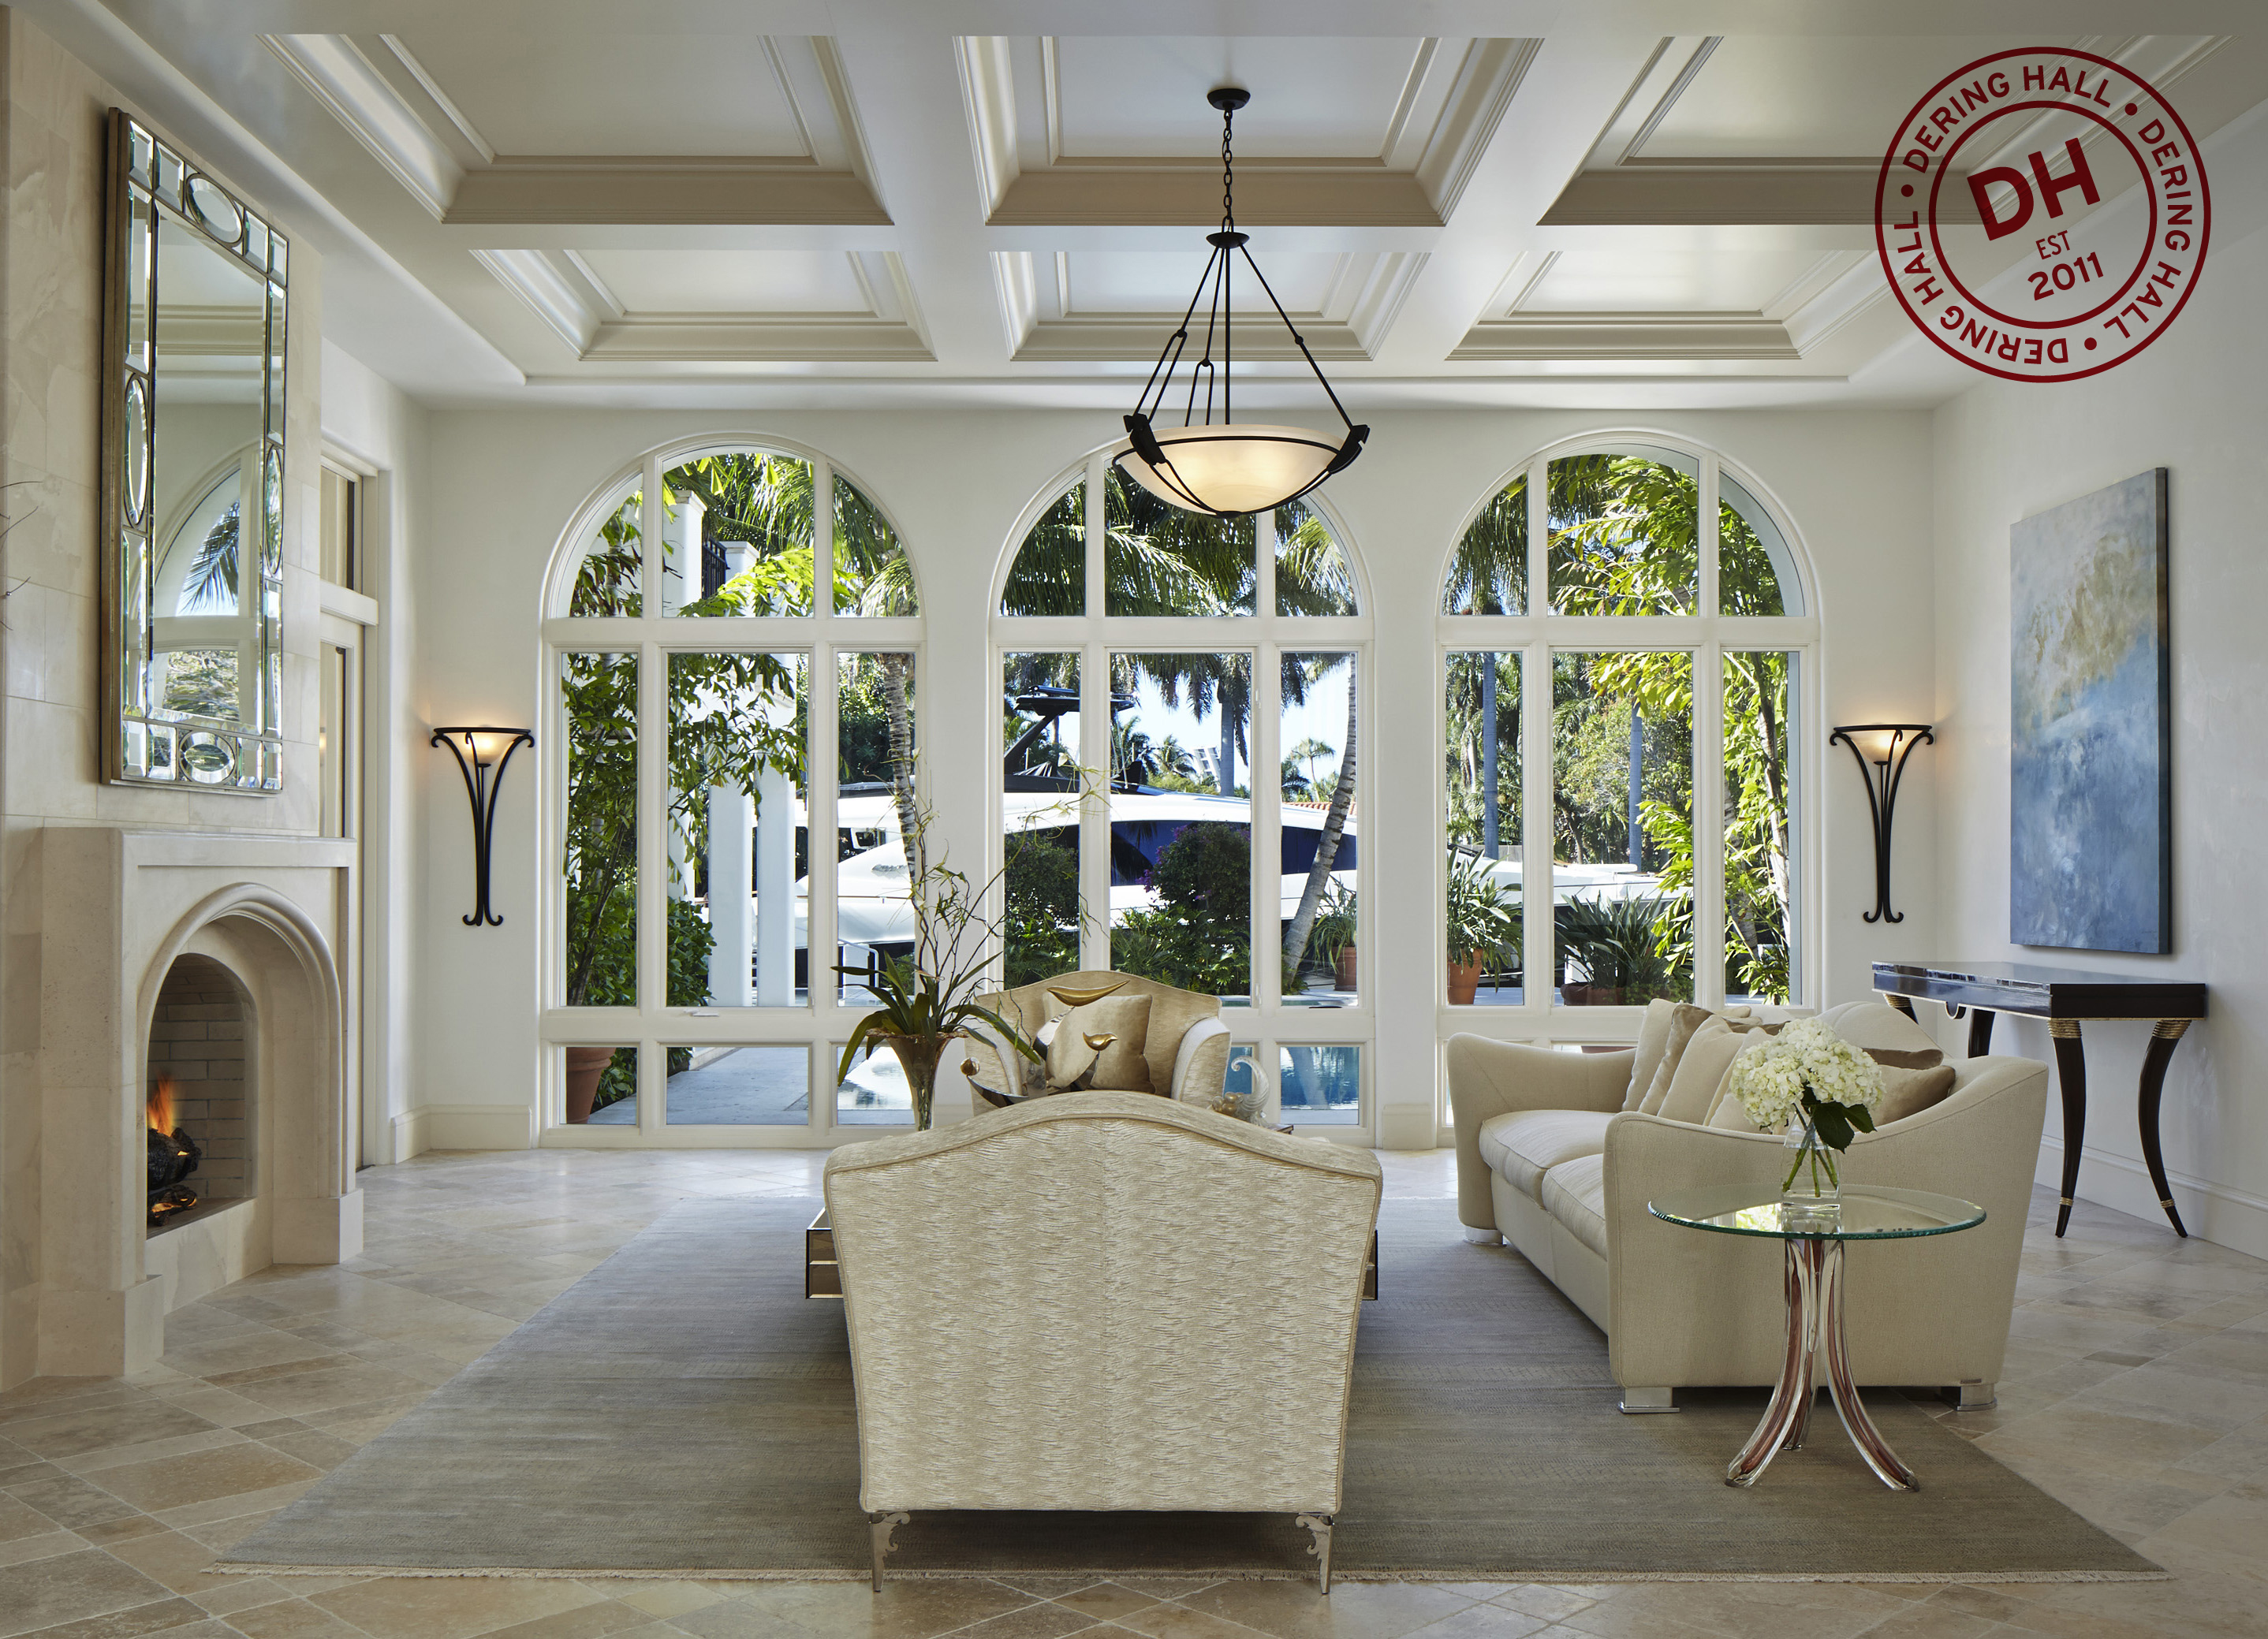 Dering Hall has Featured Our Fort Lauderdale Estate Annie Santulli